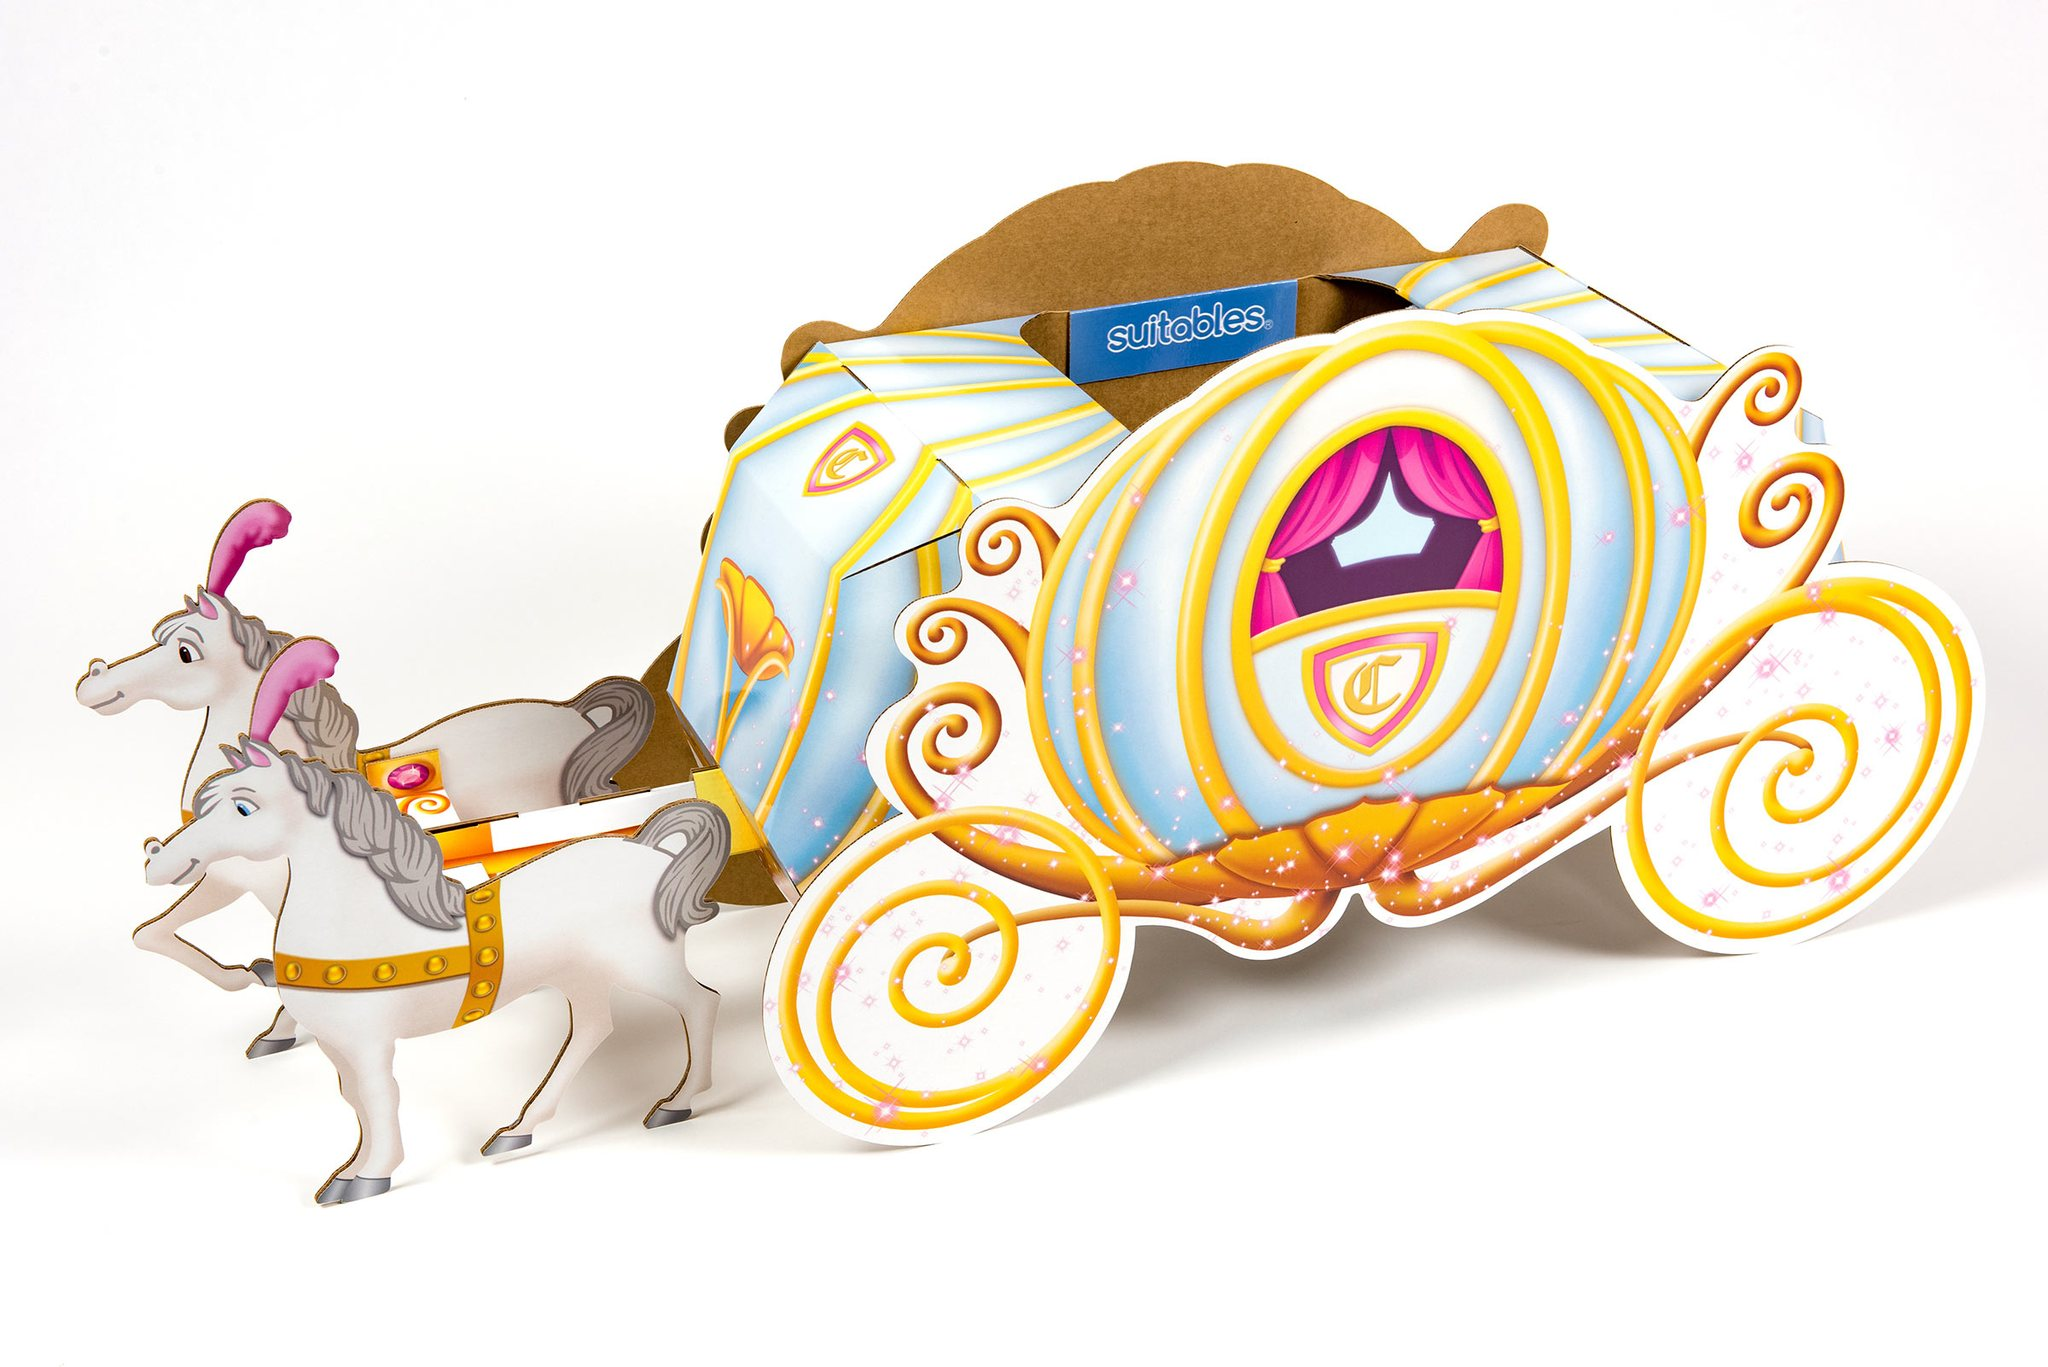 Cinderella Coach Suitable Gift For Kids